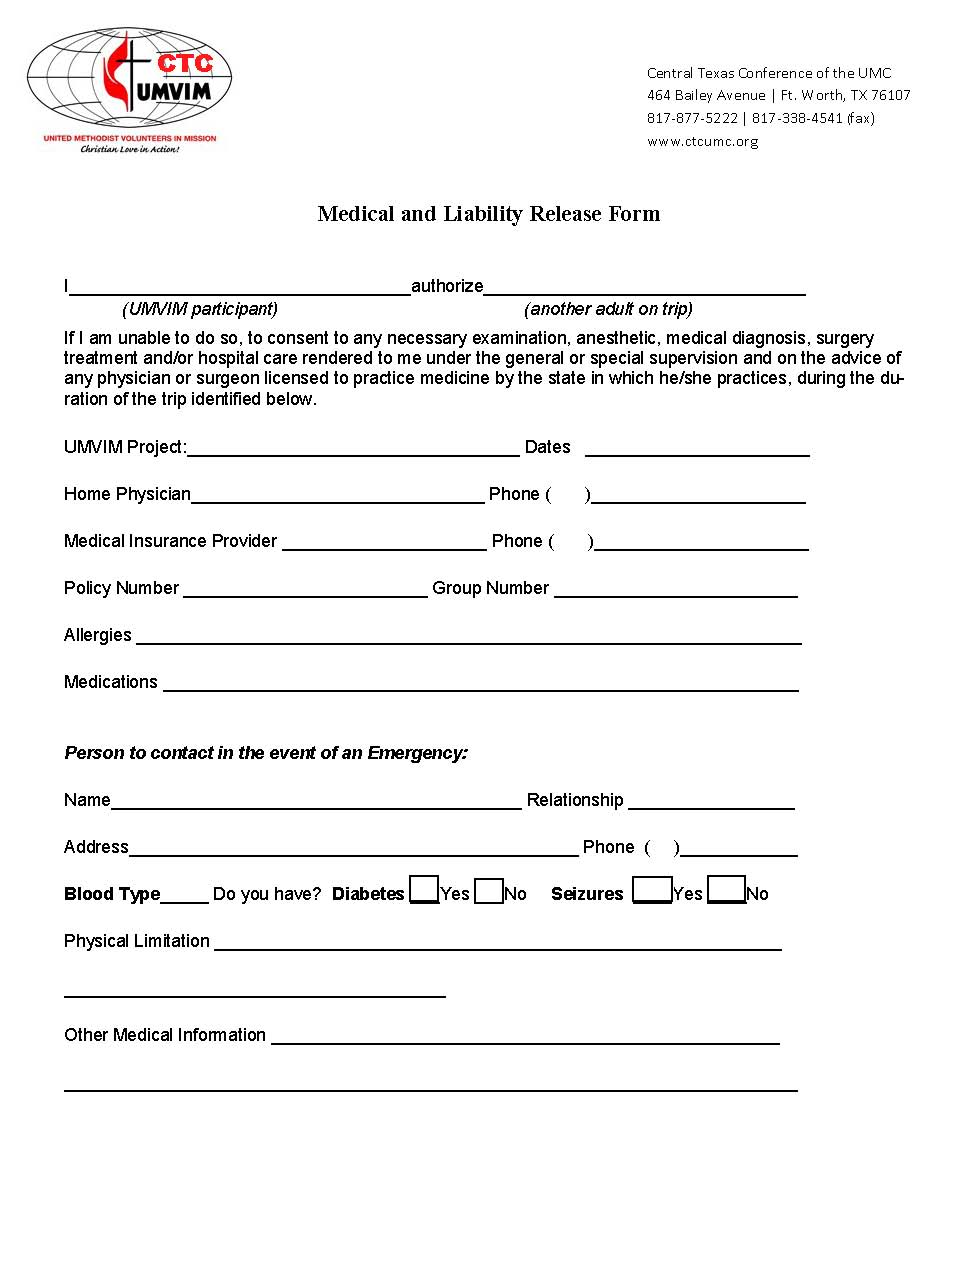 tattoo release form template - forms general liability release medical tattoo